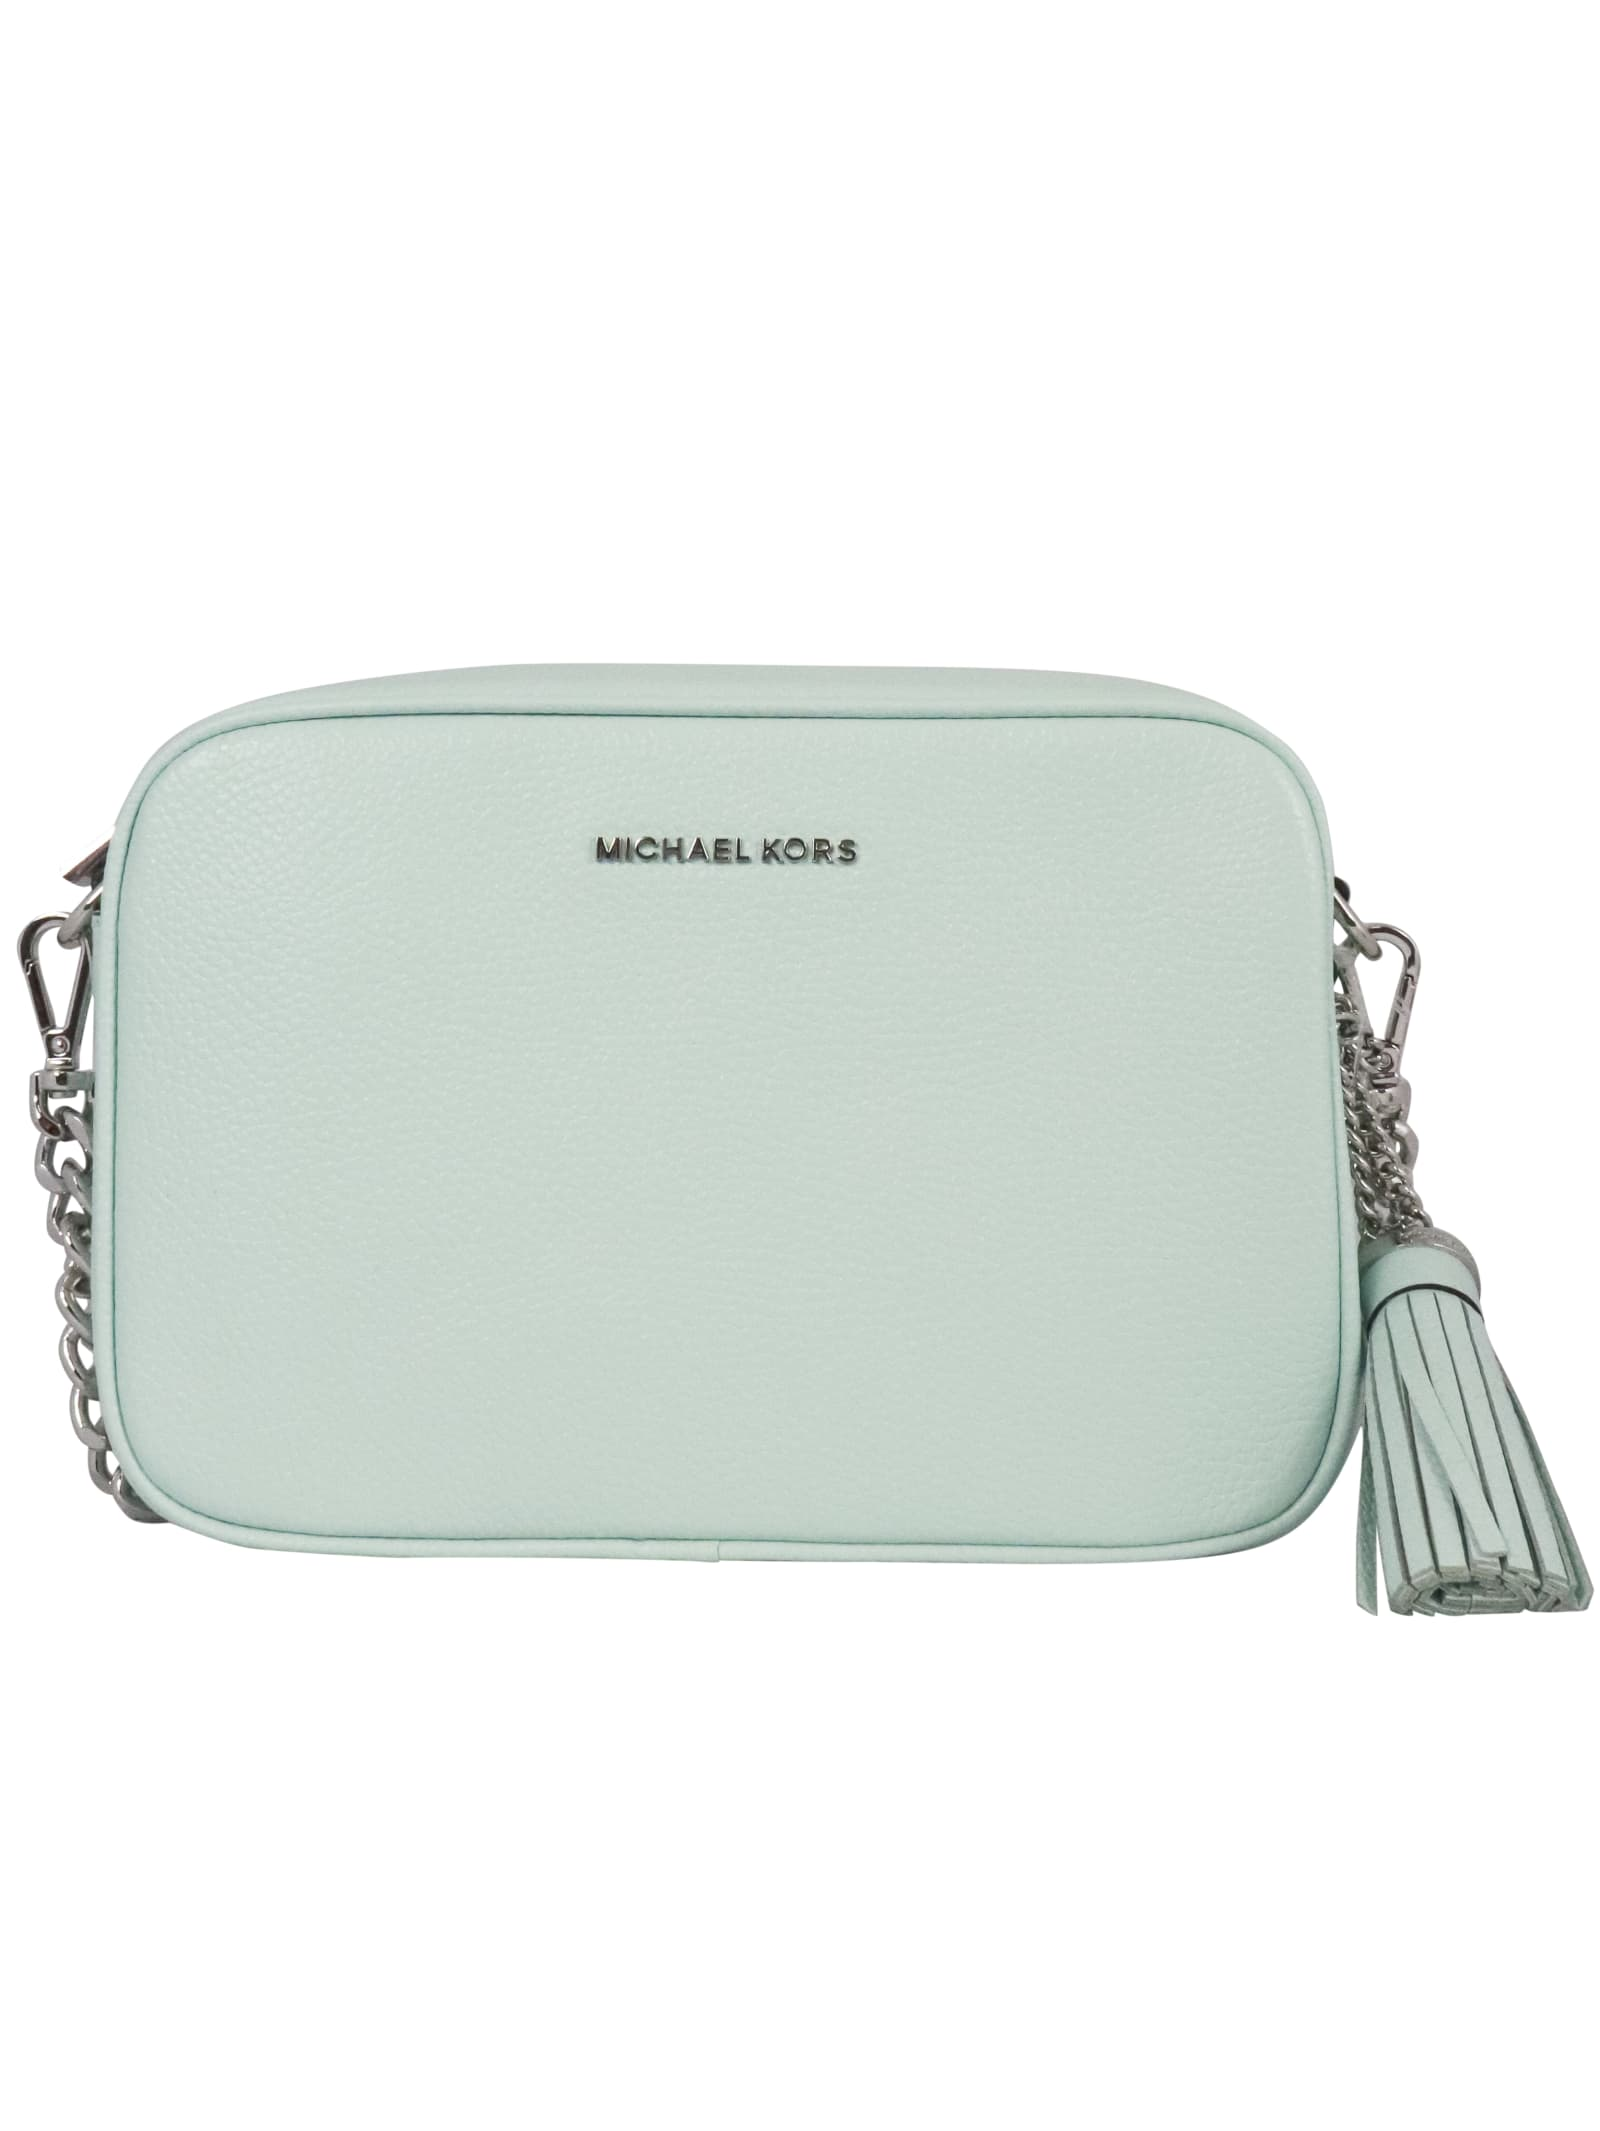 Michael Kors Md Camera Shoulder Bag